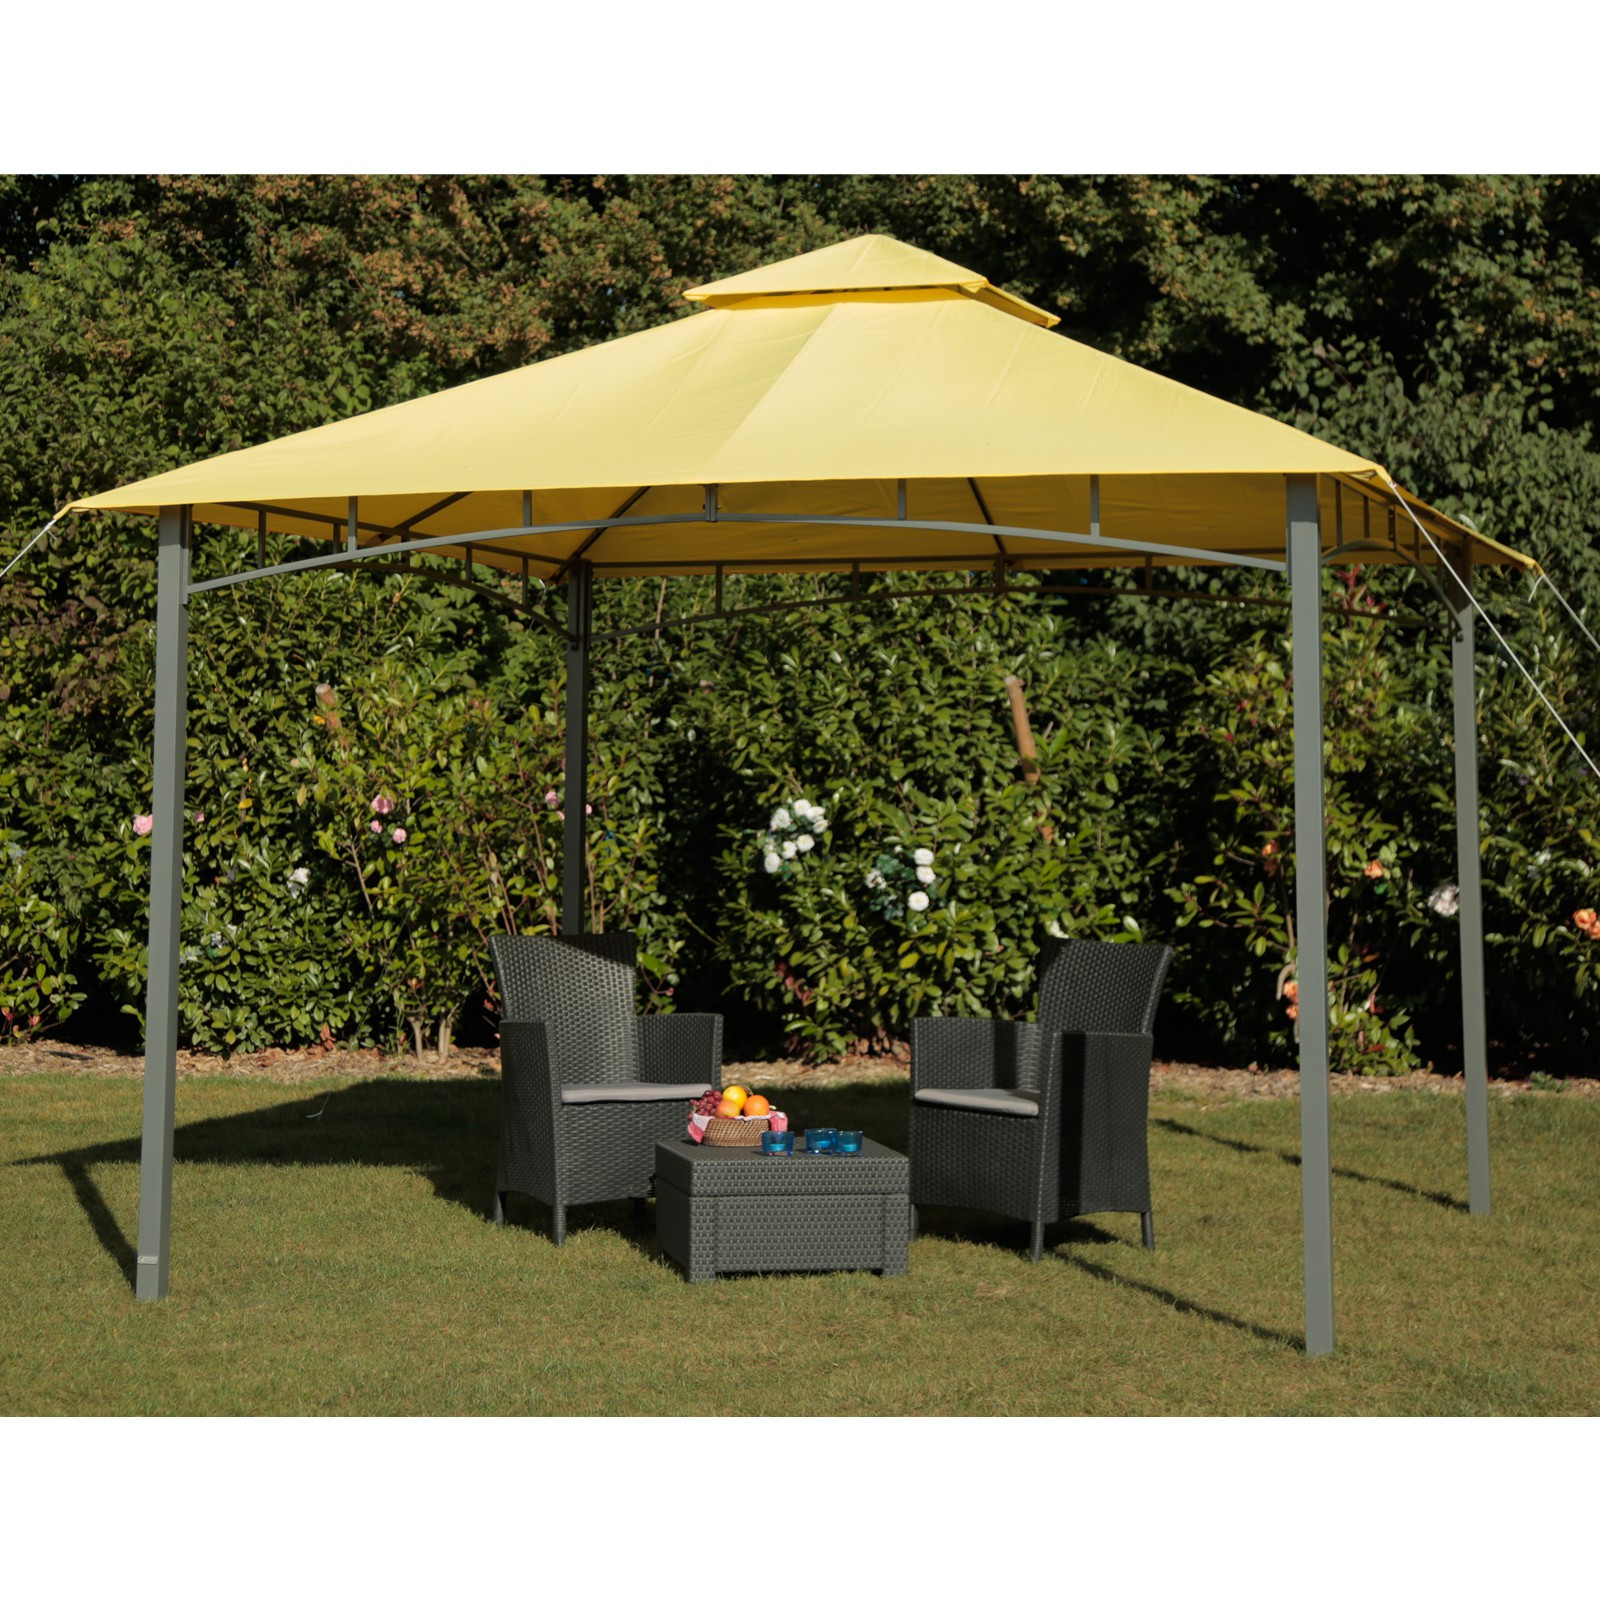 tepro garten pavillon 3x3 m gartenzelt wasserdicht camping partyzelt waya gelb 4011964055292 ebay. Black Bedroom Furniture Sets. Home Design Ideas